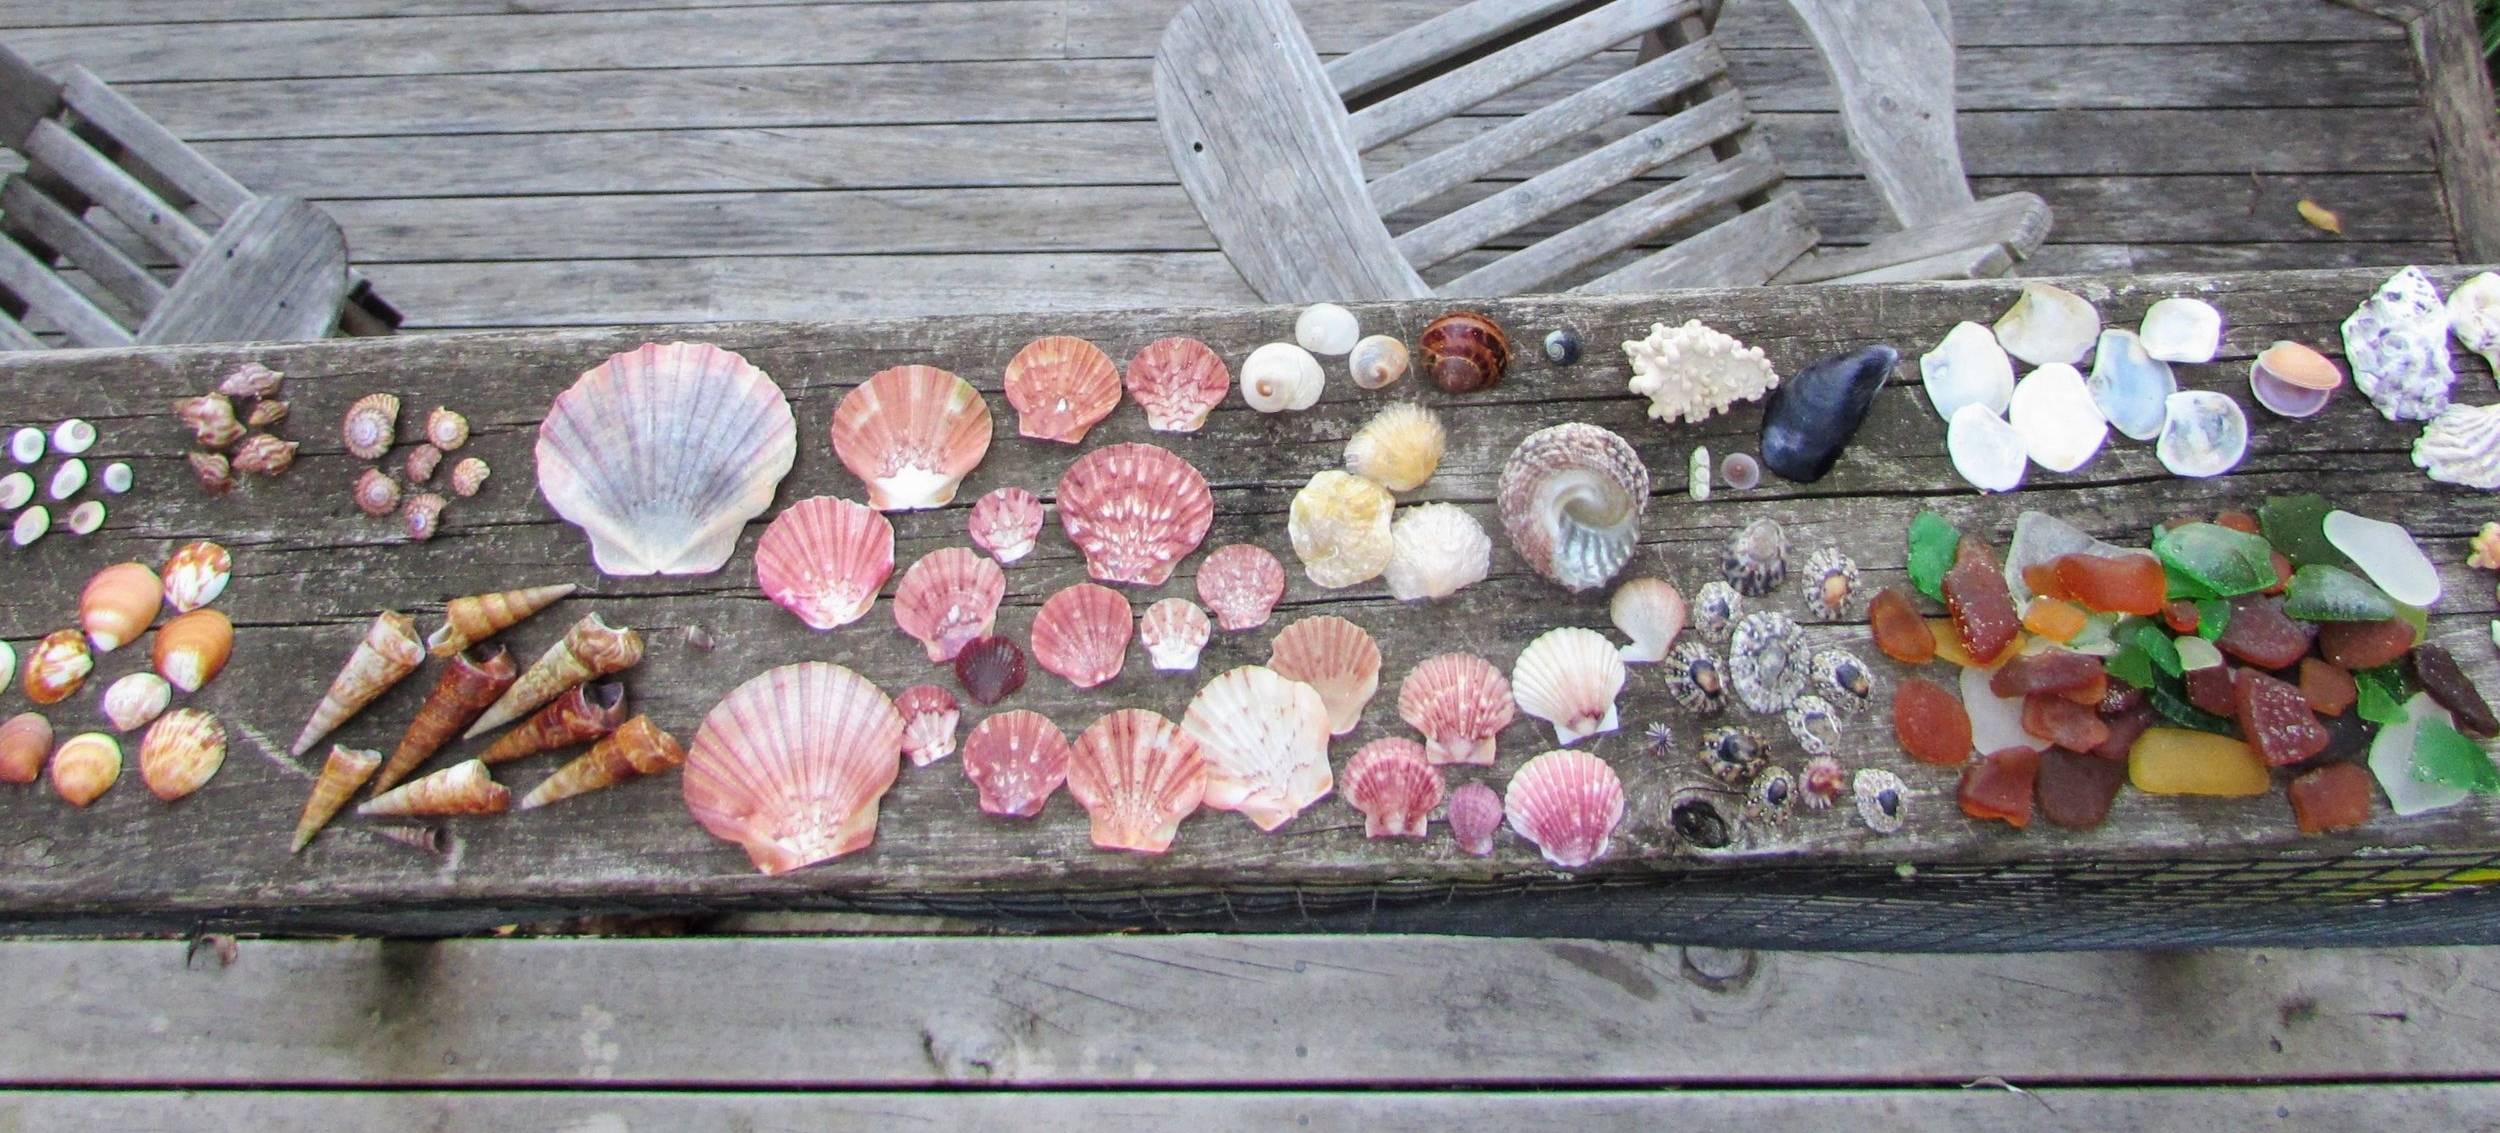 All in a day's work: the shells we collected on Waiheke's Palm Beach. Click for more detail. From left: shiva shells (turban opercula), small dog cockles, ostrich foot snails, wheel shells, turret shells, queen scallops, circular slipper shells, a black nerita, golden oysters, a pink top shell, a fan scallop, a blue mussel next to some shell pieces, radiata limpets, a small siphon limpet, seaglass, battleaxe shells, an intact fine dosinia, two very worn-down Auckland rock oysters, a nestling cockle, worm shell fragments.